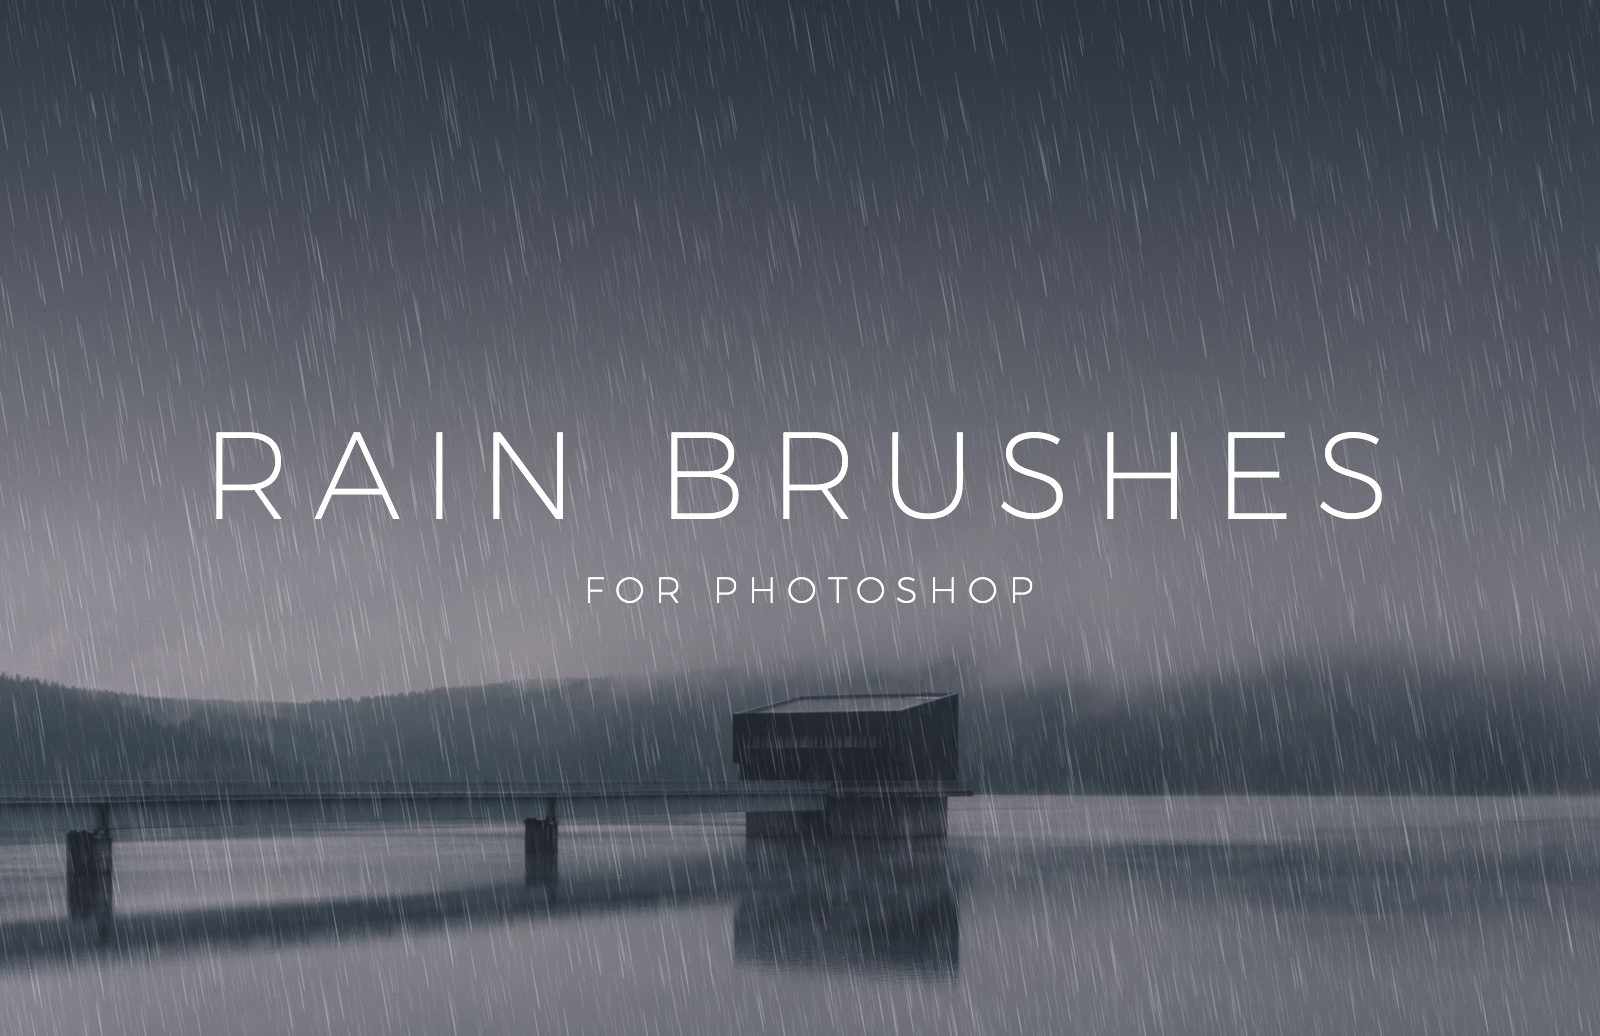 Rain Brushes for Photoshop